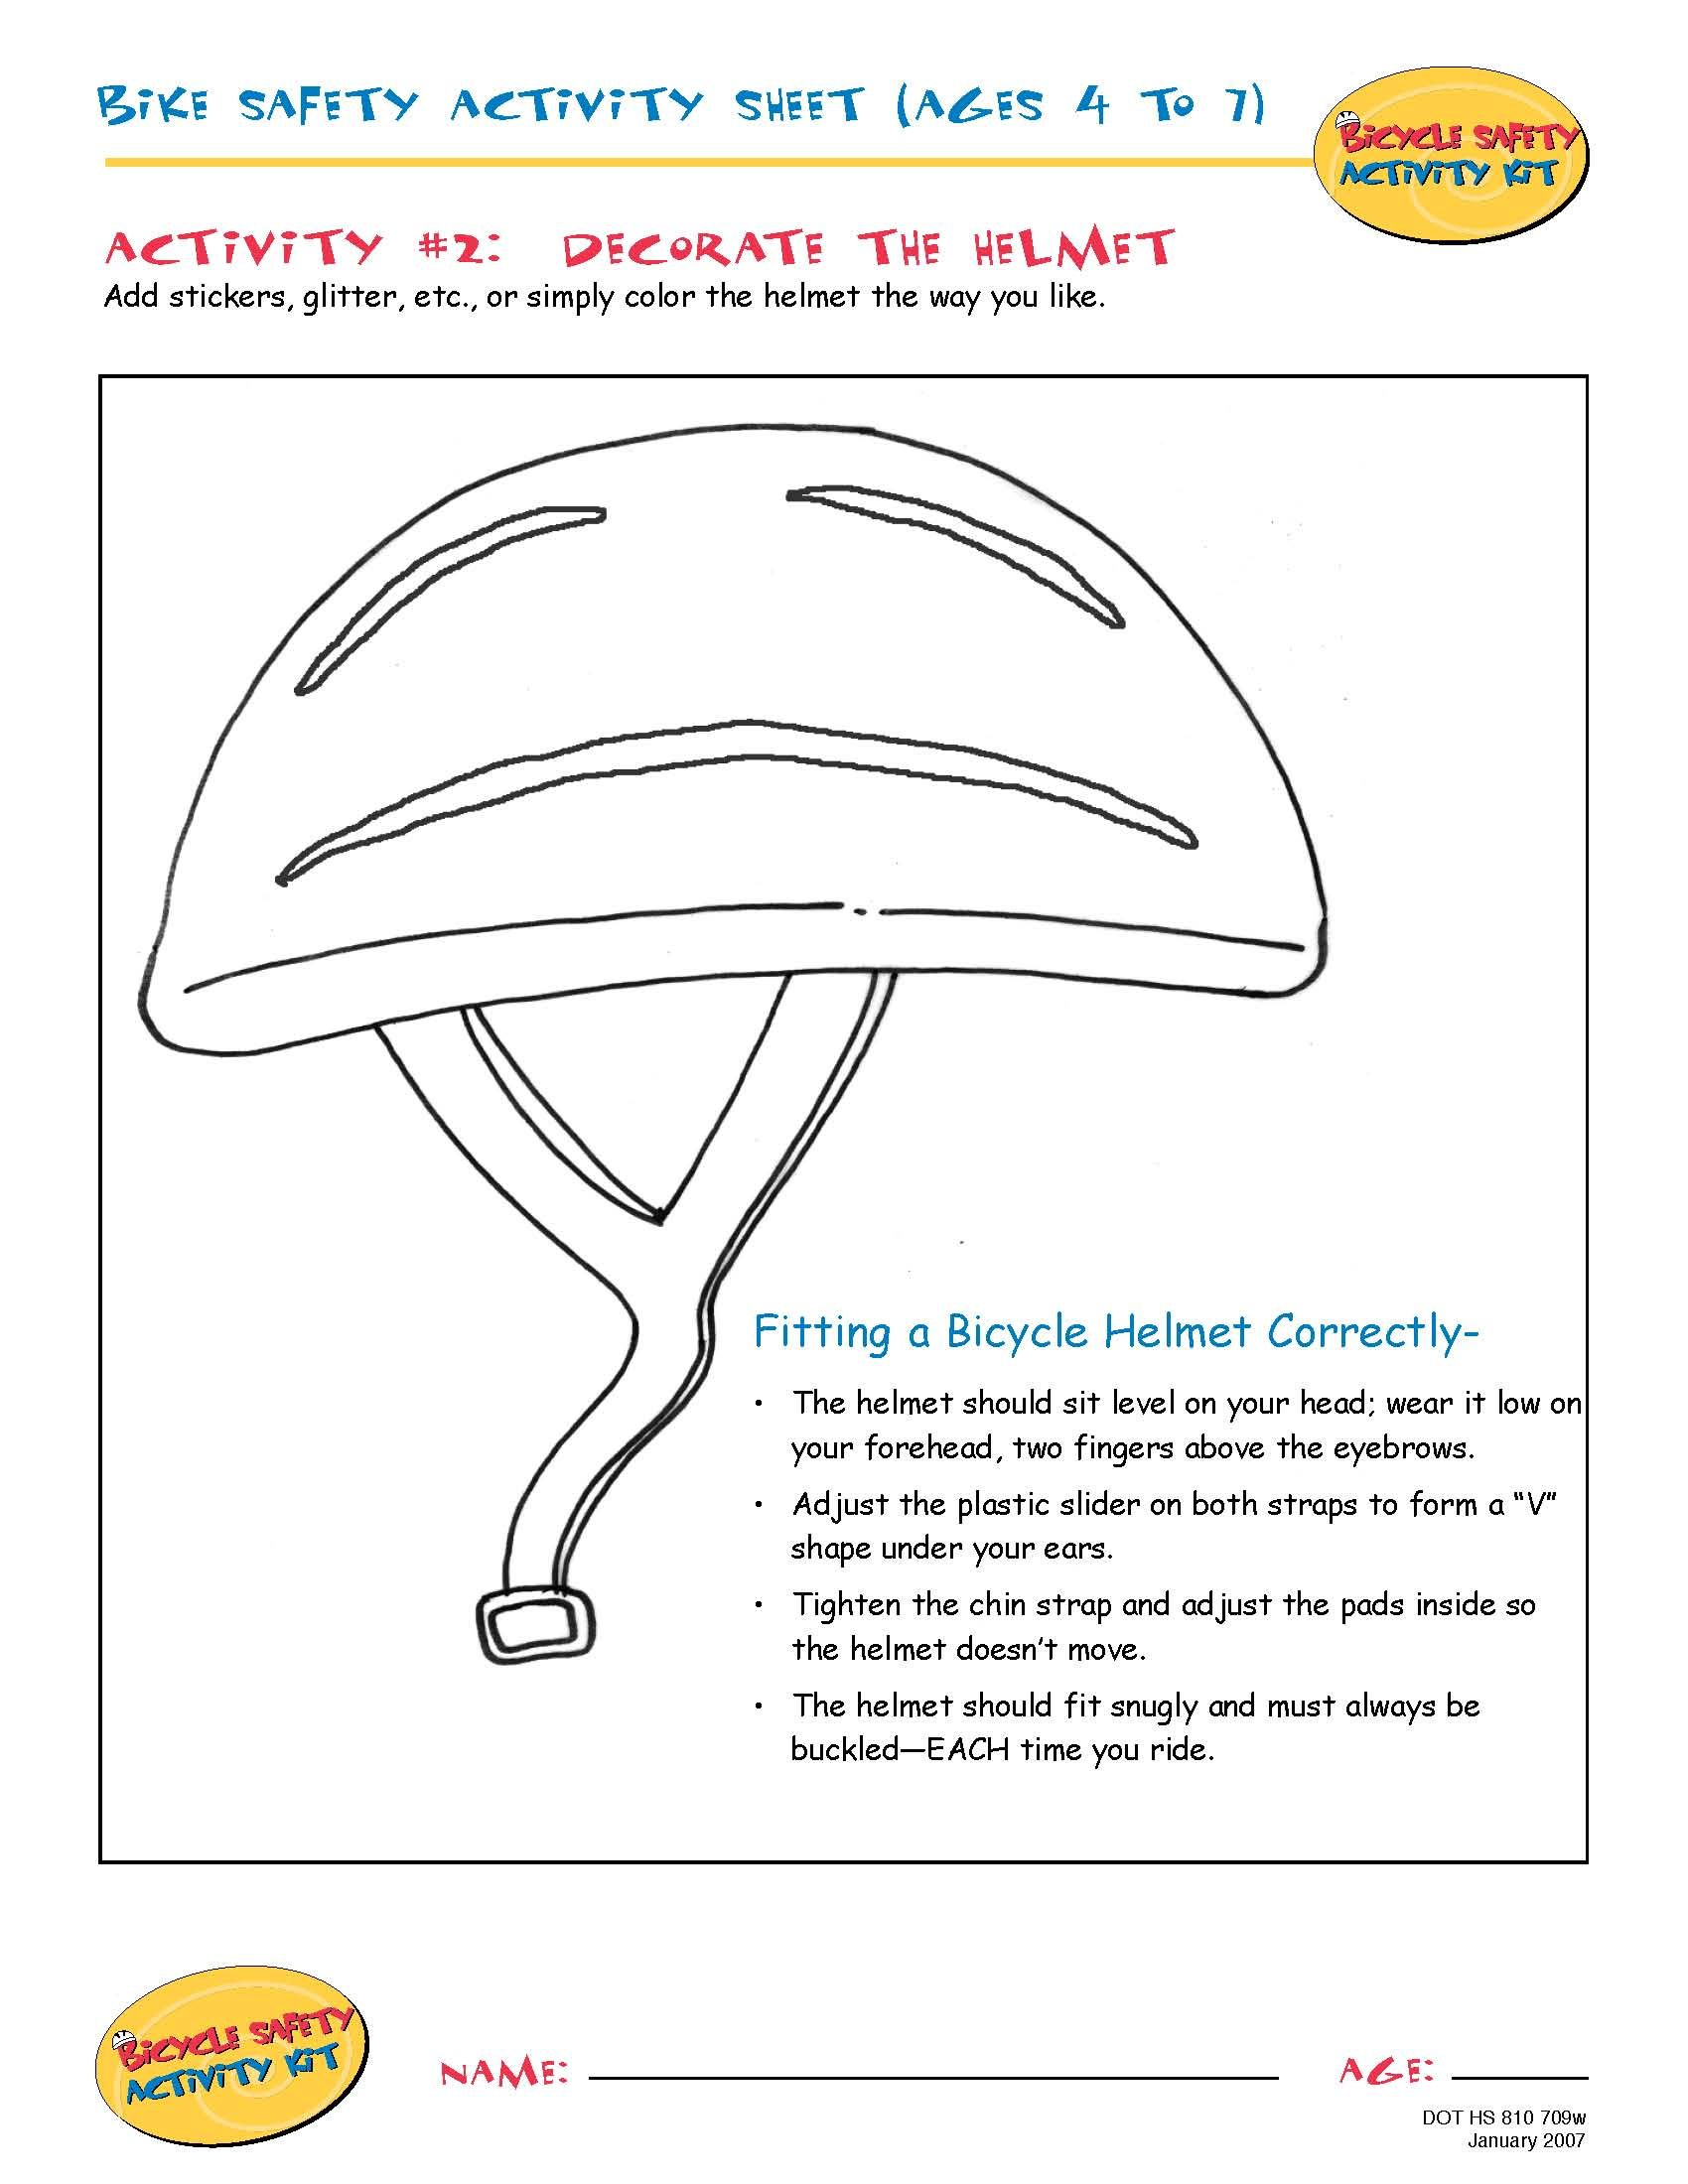 Bike Safety Activity Sheet Ages 4 To 7 Decorate The